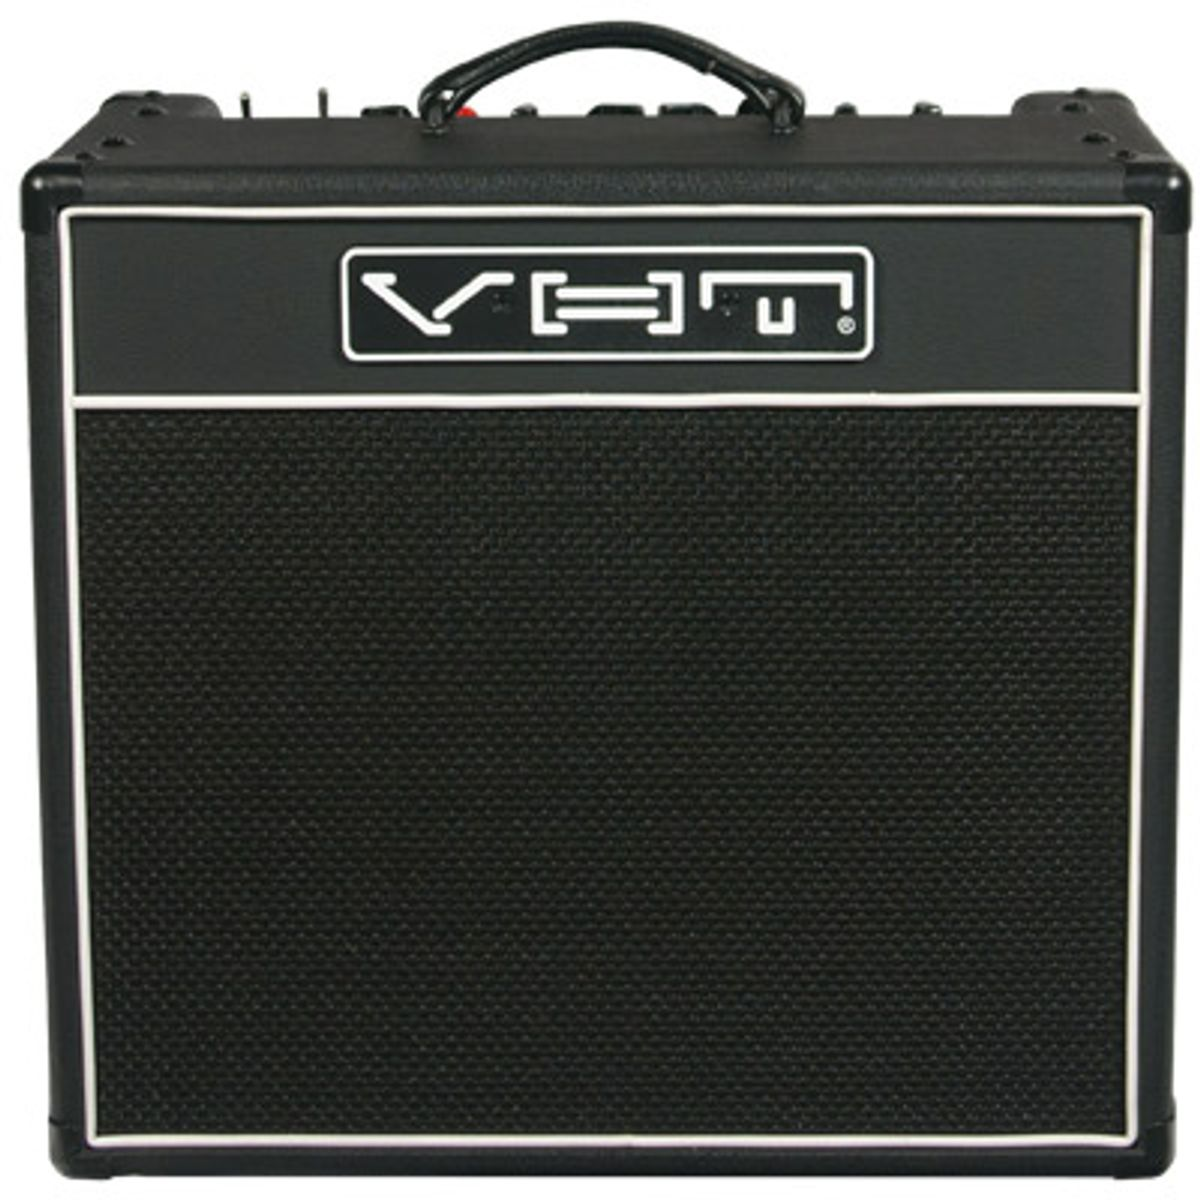 VHT Special 12/20 RT Amp Review